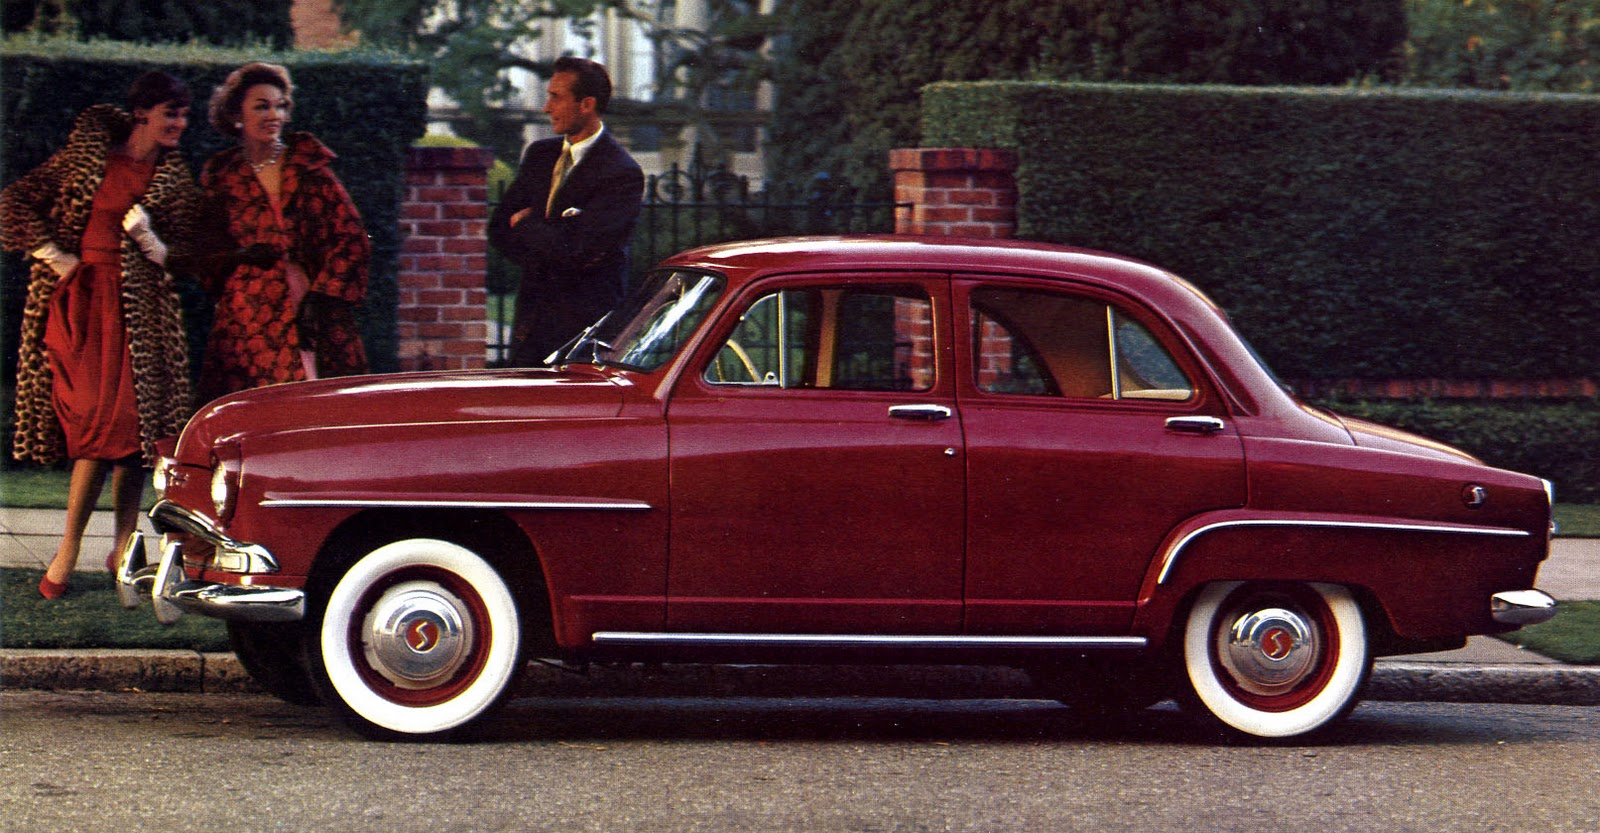 1959 was Simca.